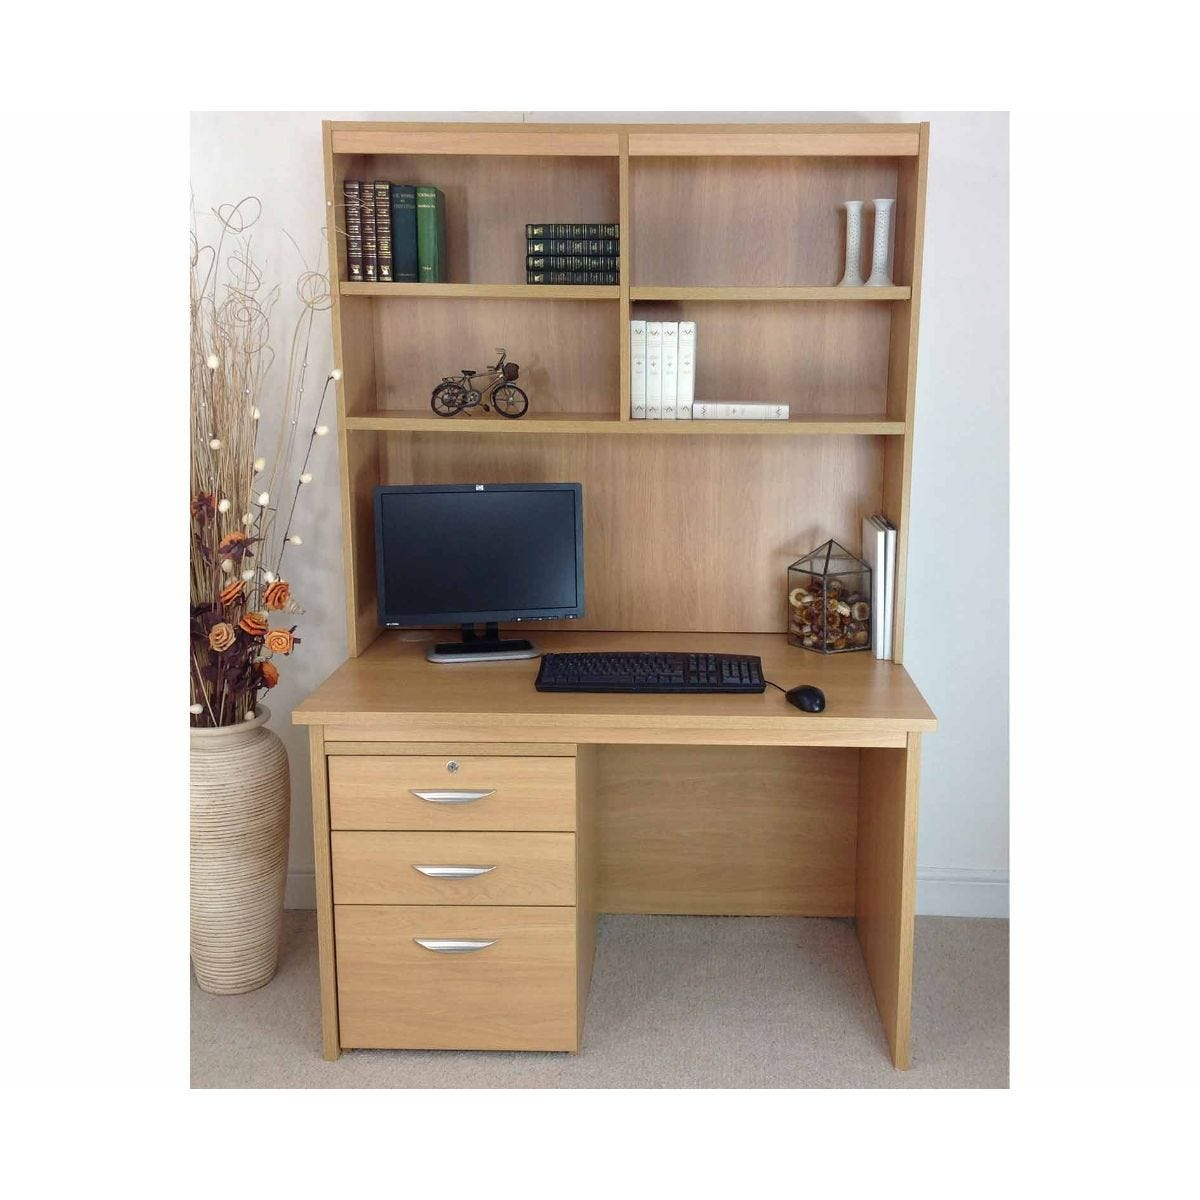 R White Home Office Freestanding Desk with Drawers and Overshelving, Classic Oak